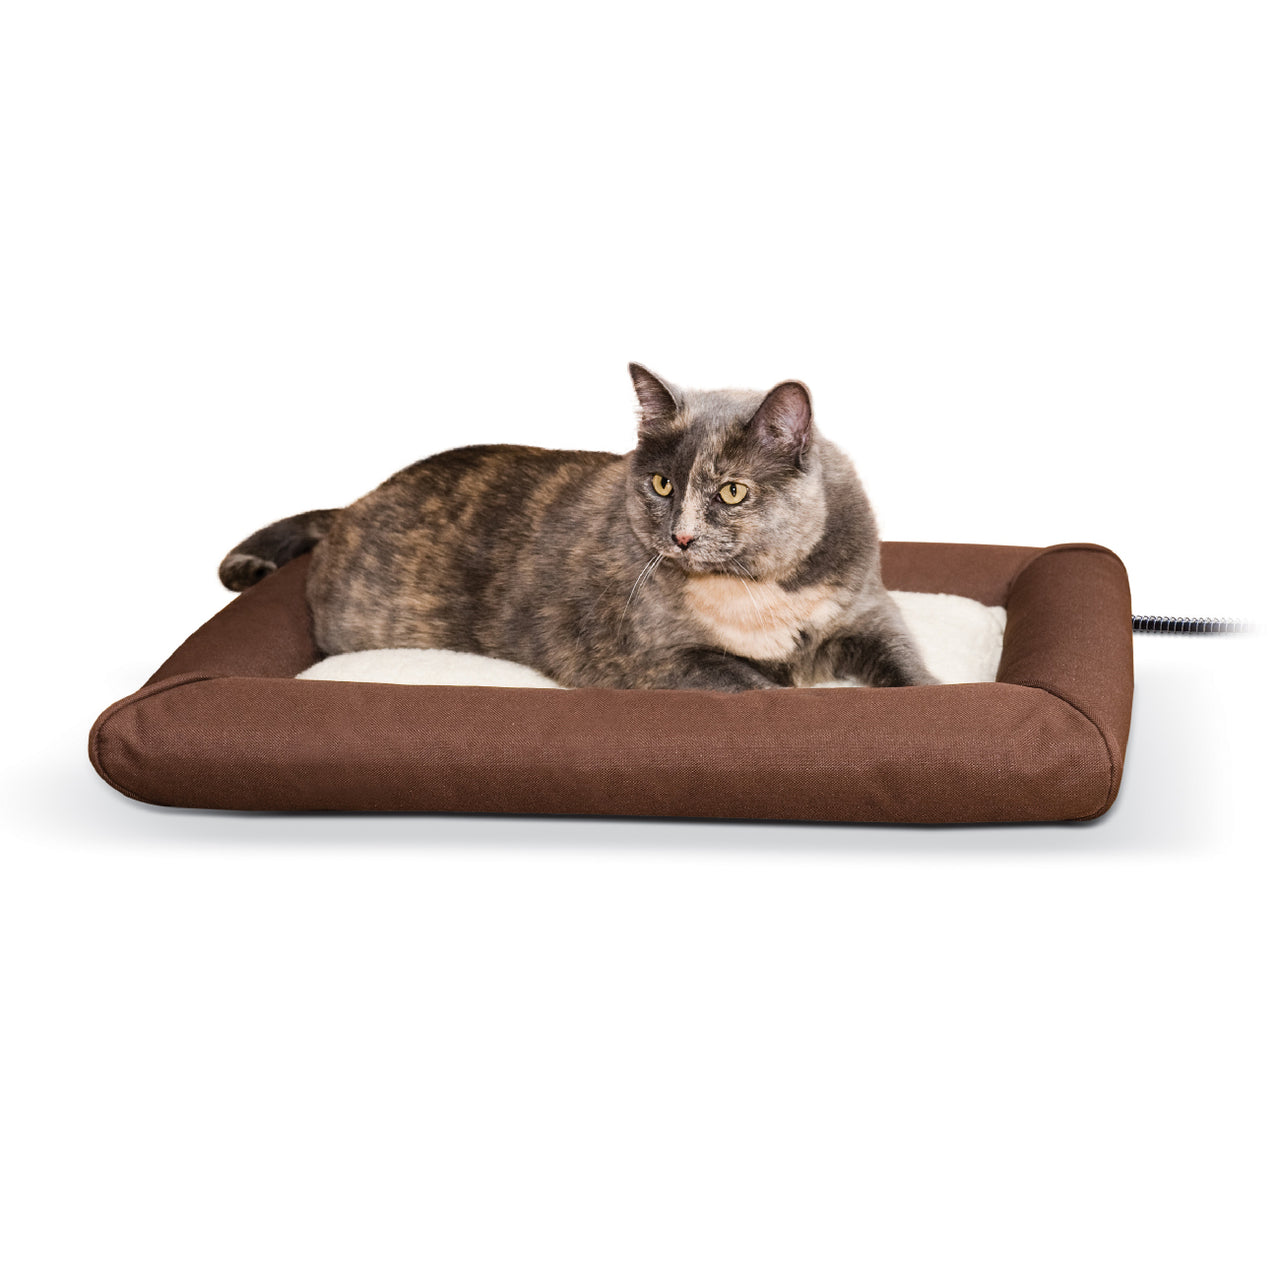 K&h Pet Products Deluxe Lectro-Soft & Cover (Small-40W) - Deluxe Lectro-Soft Outdoor Heated Bed Tan K&h Pet Products - Canada